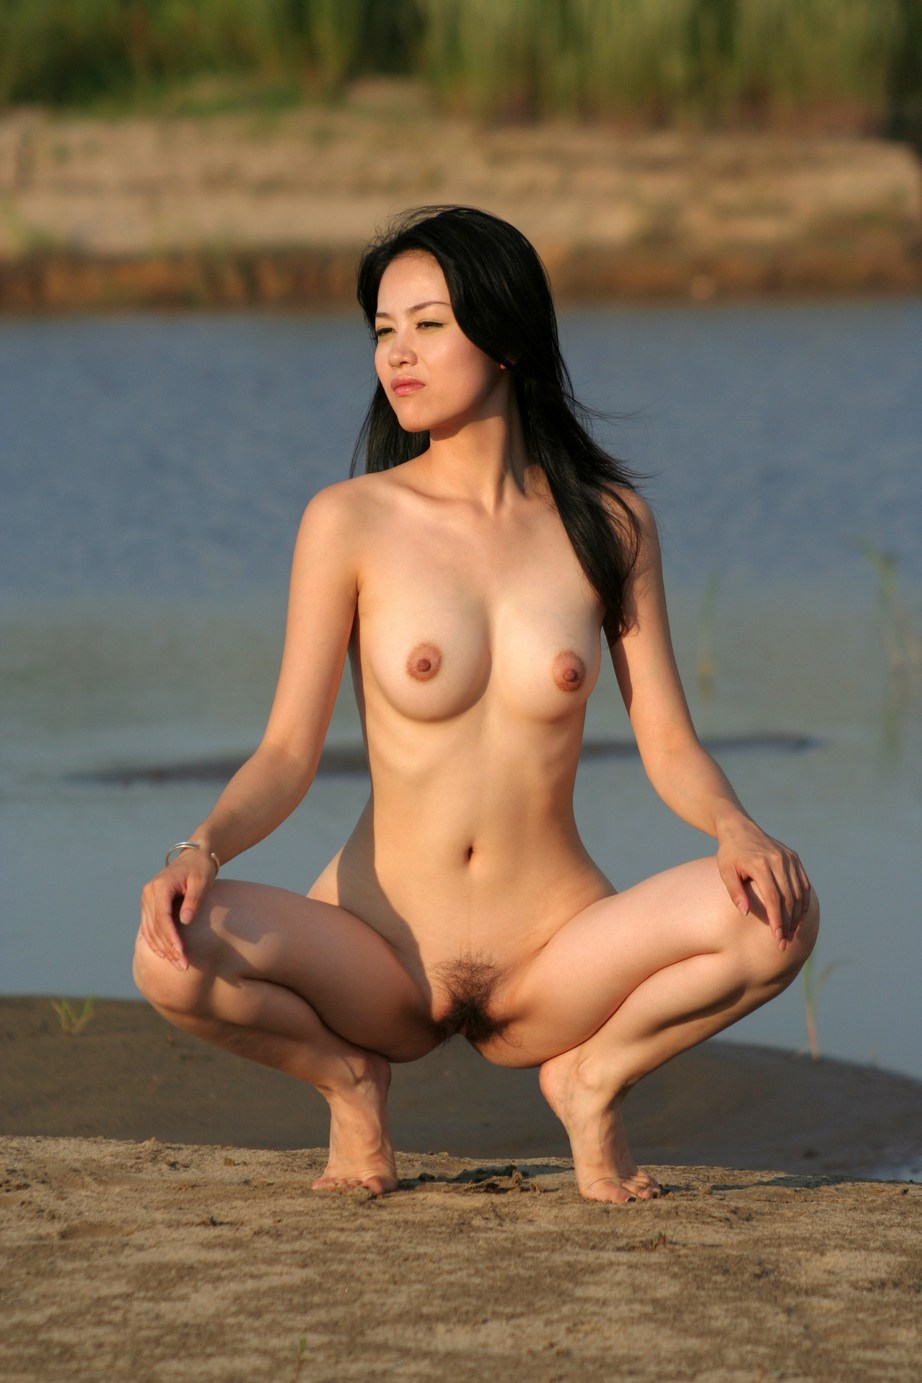 China Porn Pretty Pussy - Beautiful sporty asian exposes her pussy outdoors. 20 photos